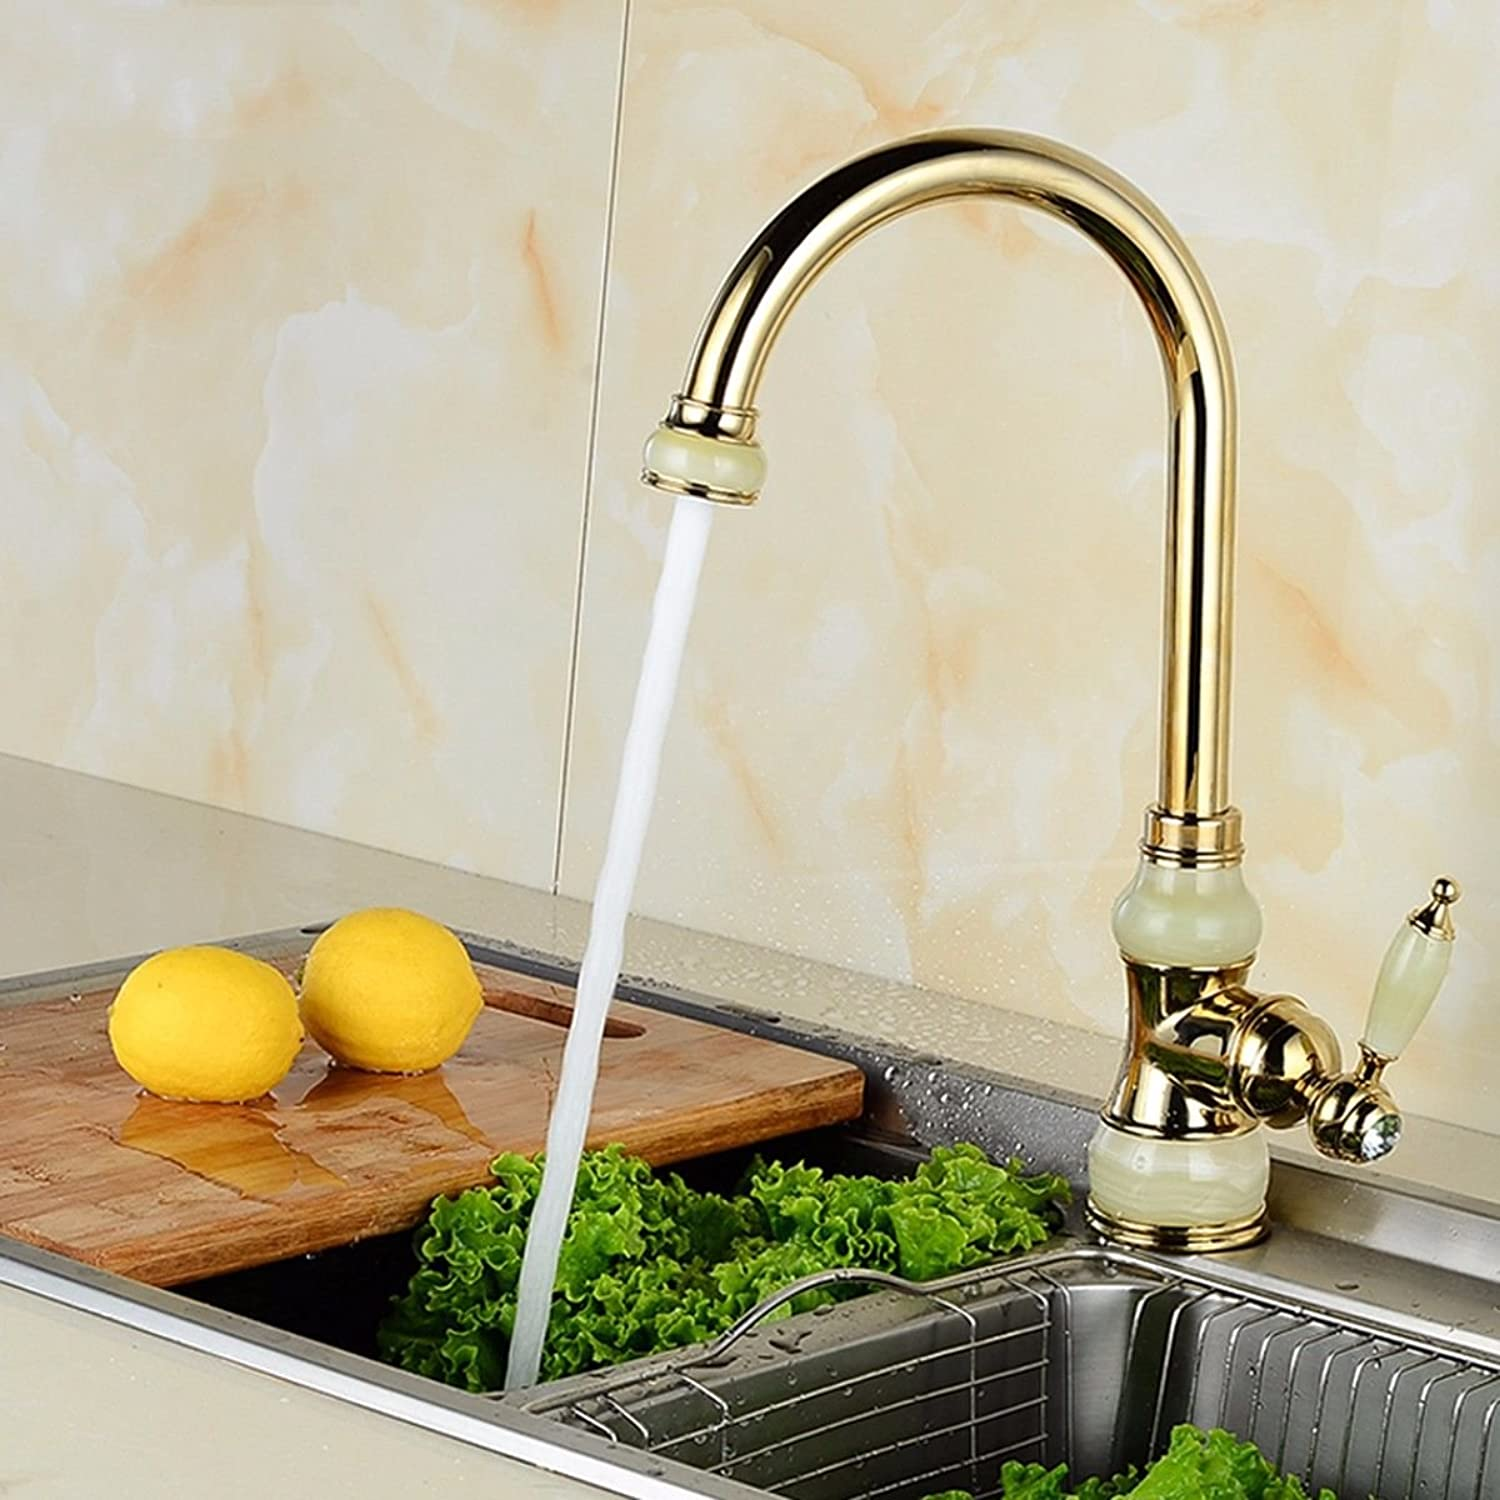 LHbox Basin Mixer Tap Bathroom Sink Faucet European Natural jade full copper surface basin of hot and cold water faucets kitchen sink to redate the gold antique fittings,